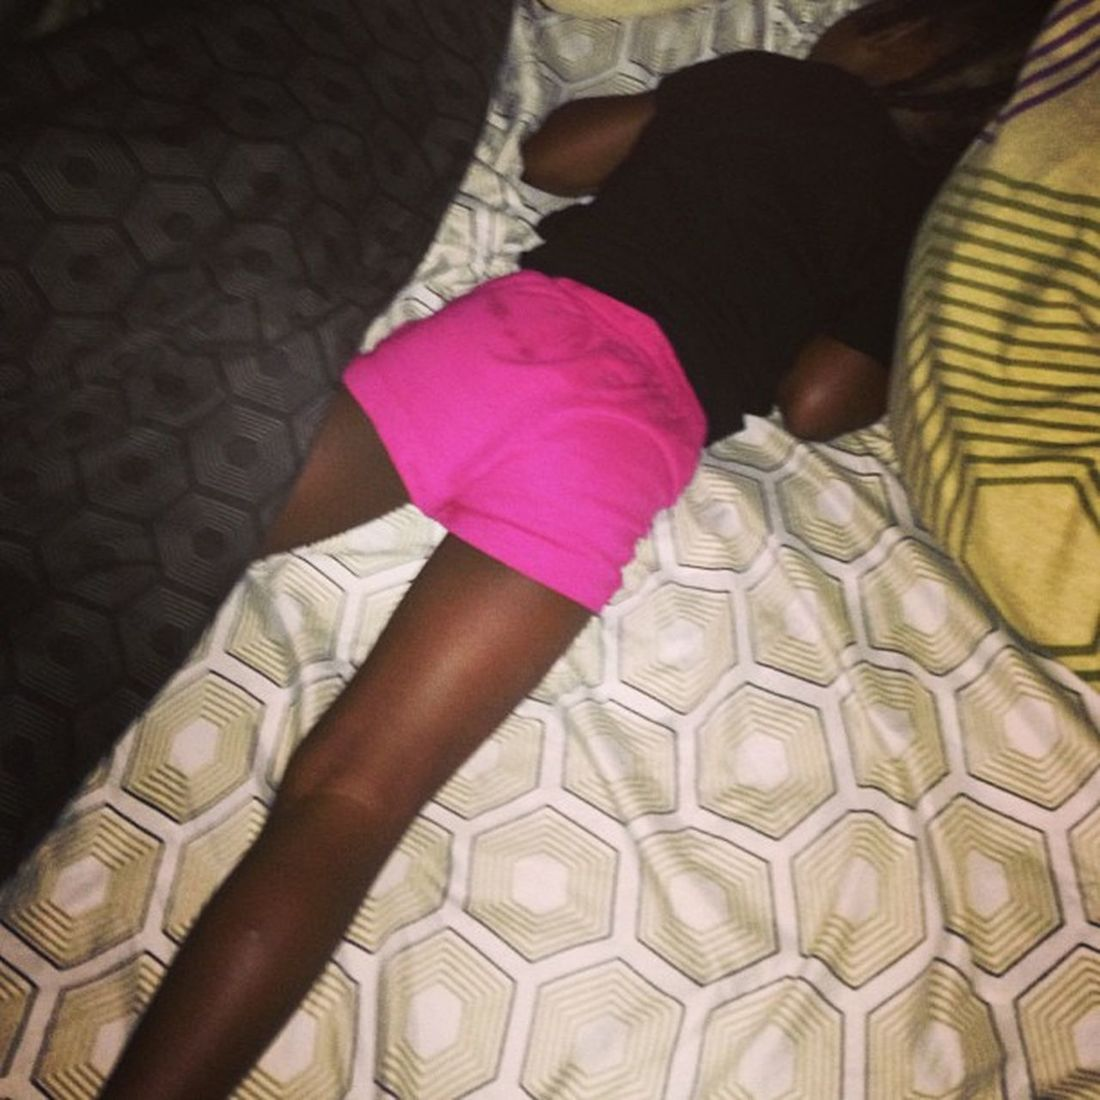 I put her in her bed she ends up in my bed kicking me all night with these long legs ! It's a king size Miniya try the other side and let me sleep please ! Signed Tiredmommy